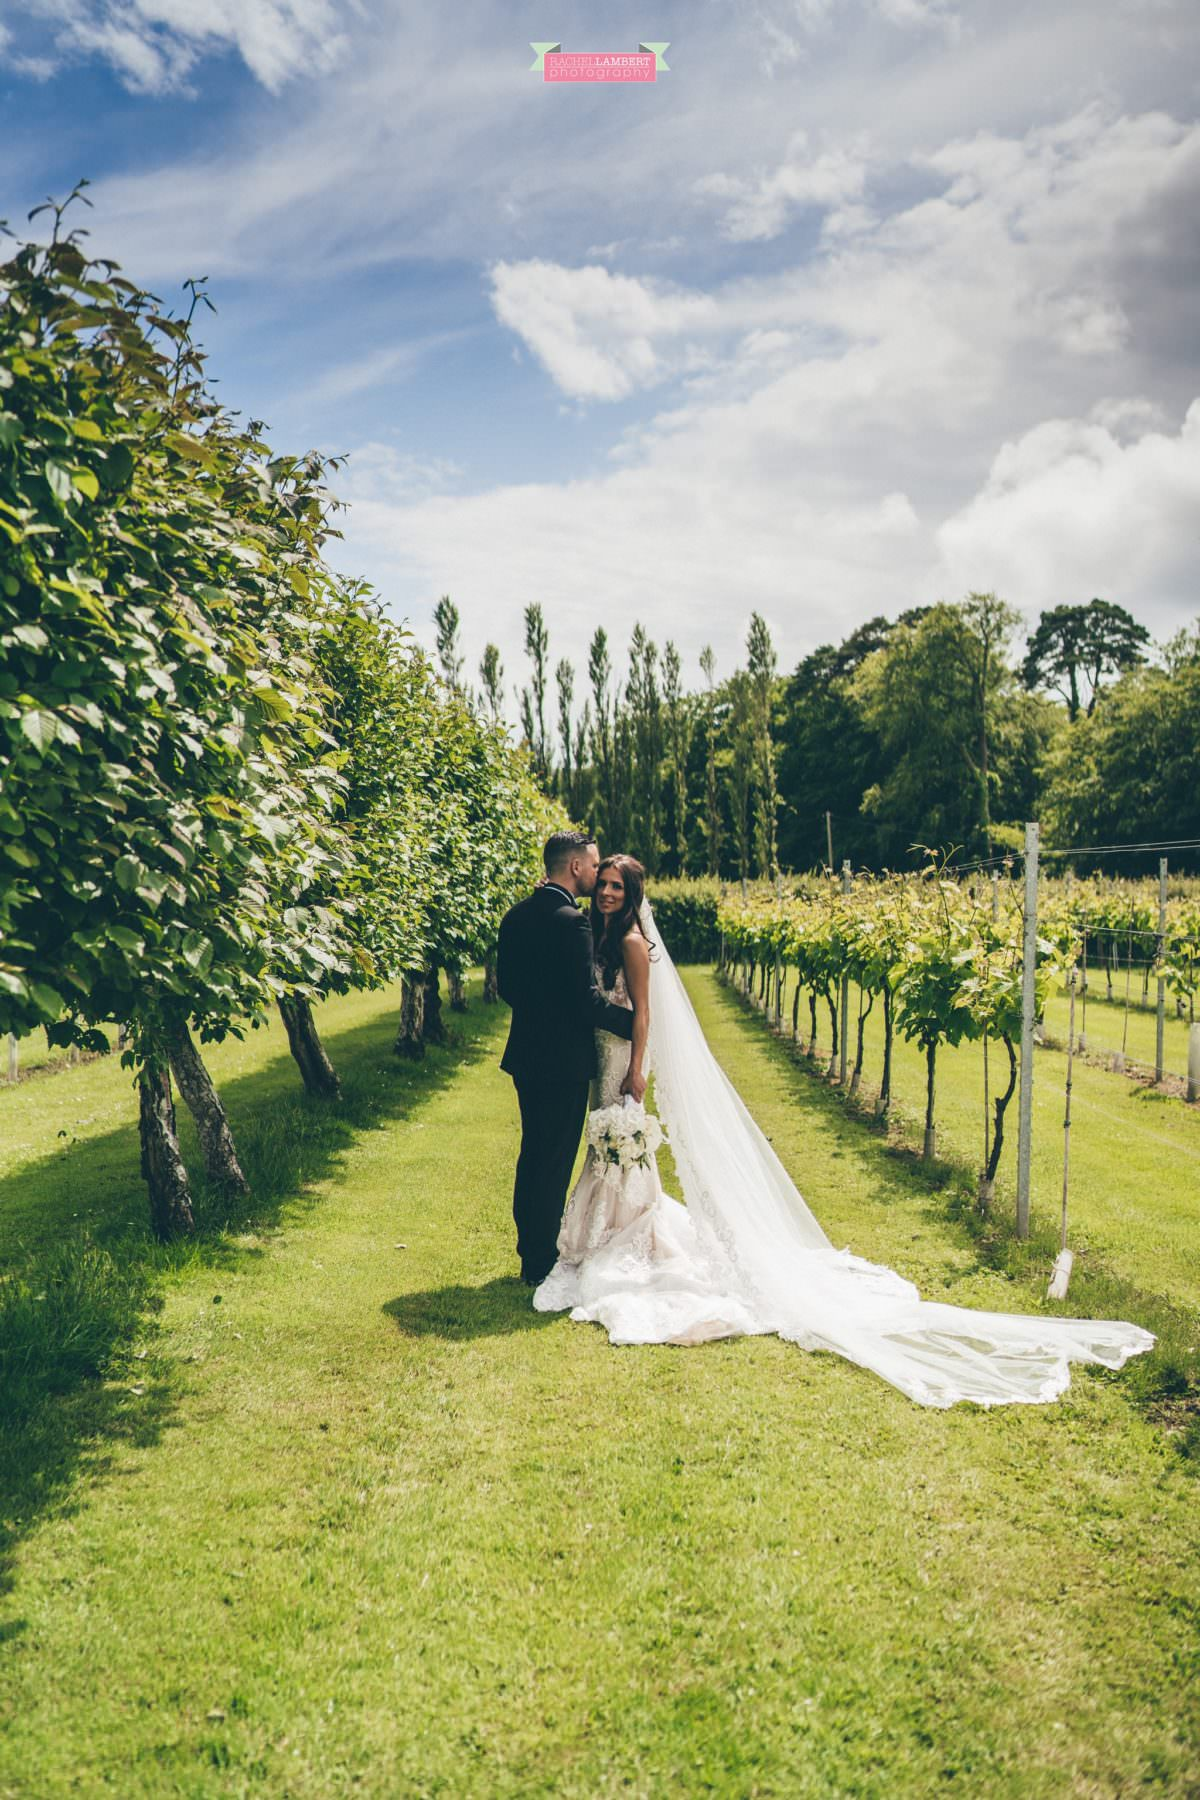 Cardiff Wedding Photographer Llanerch Vineyard rachel lambert photography bride and groom couple shots